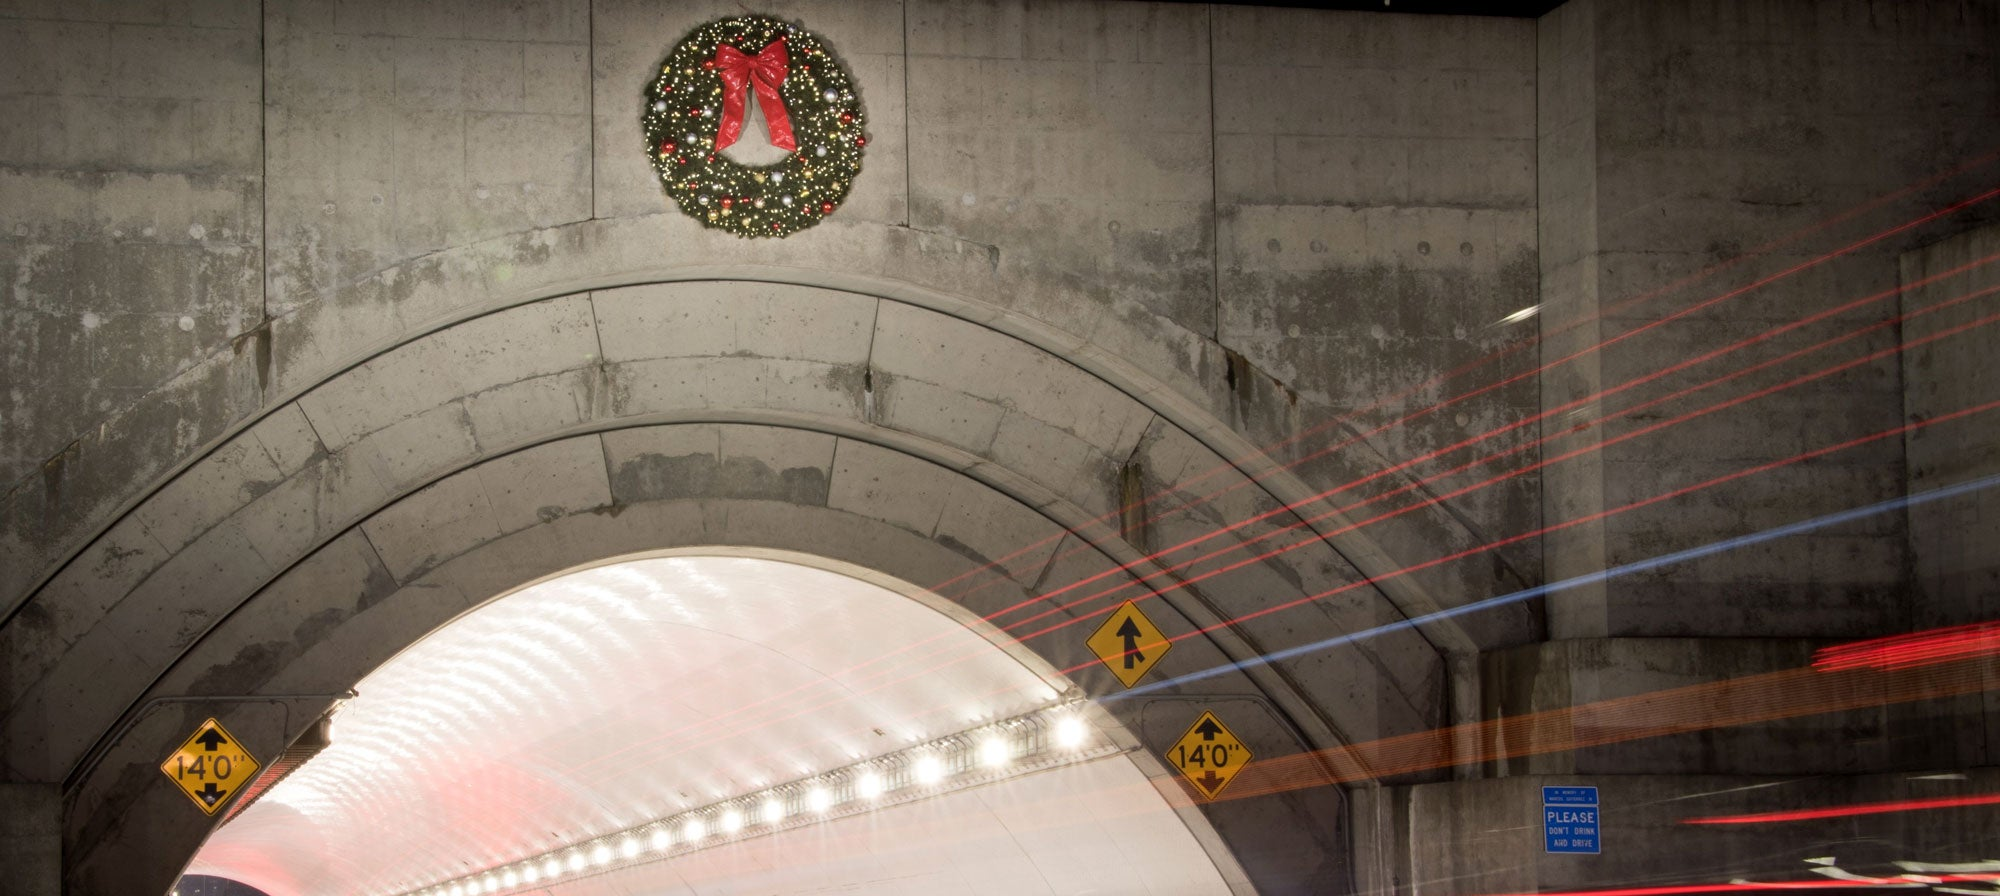 Tail lights streak red as vehicles enter the entrance of westbound Yerba Buena tunnel with the holiday wreath hung above.